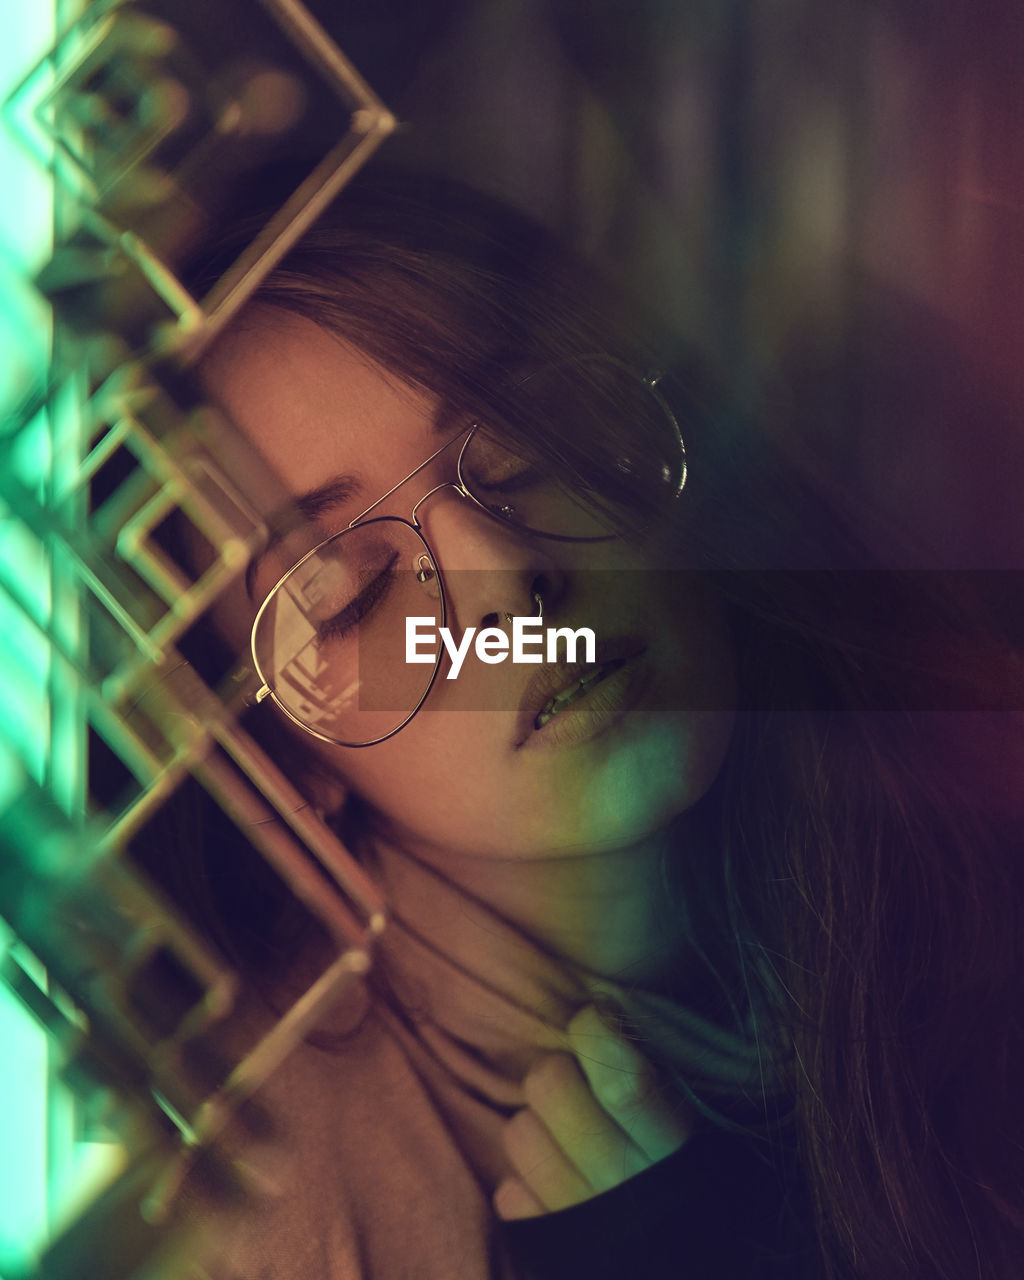 glasses, portrait, one person, young adult, young women, eyeglasses, headshot, real people, leisure activity, looking at camera, women, lifestyles, hair, focus on foreground, close-up, hairstyle, front view, selective focus, beautiful woman, human face, contemplation